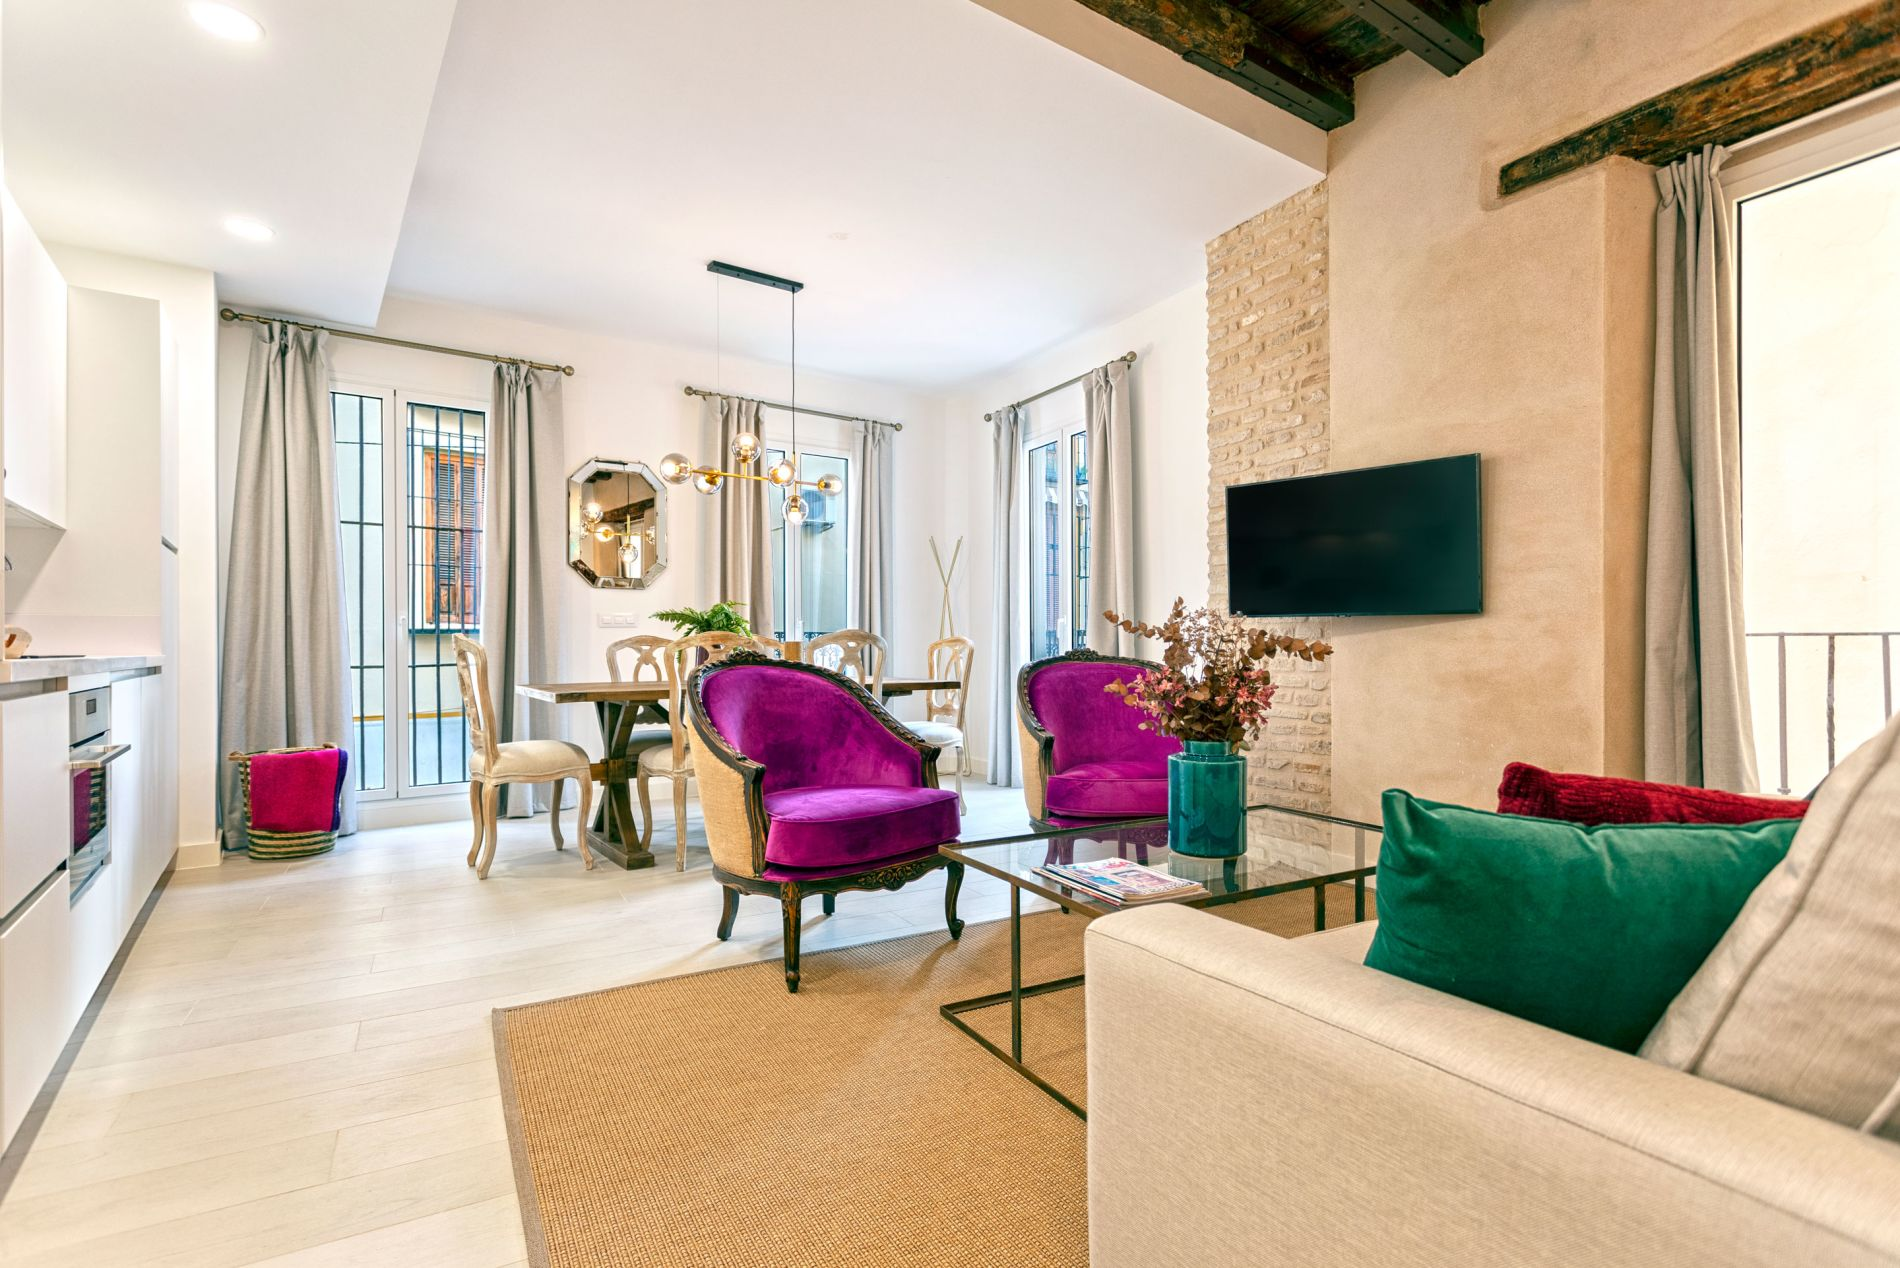 Luxury accommodation for monthly rental in Seville